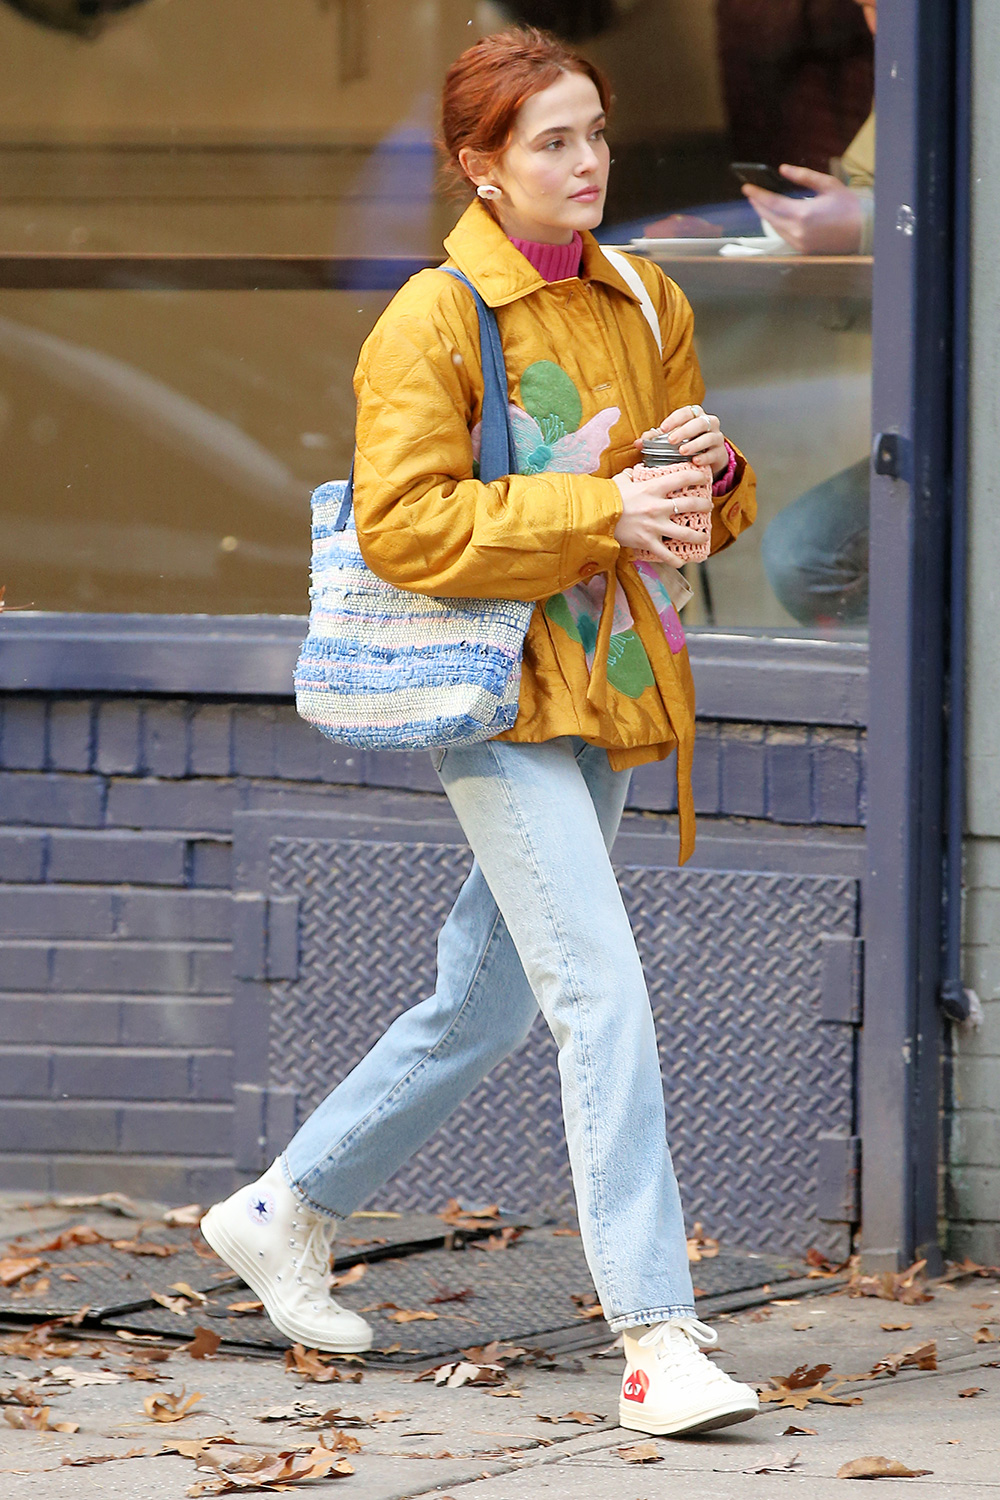 Zoey Deutch leaves a coffee shop with her coffee mug encased by a crocheted warmer as she films 'The Politician' in East Village in New York City.